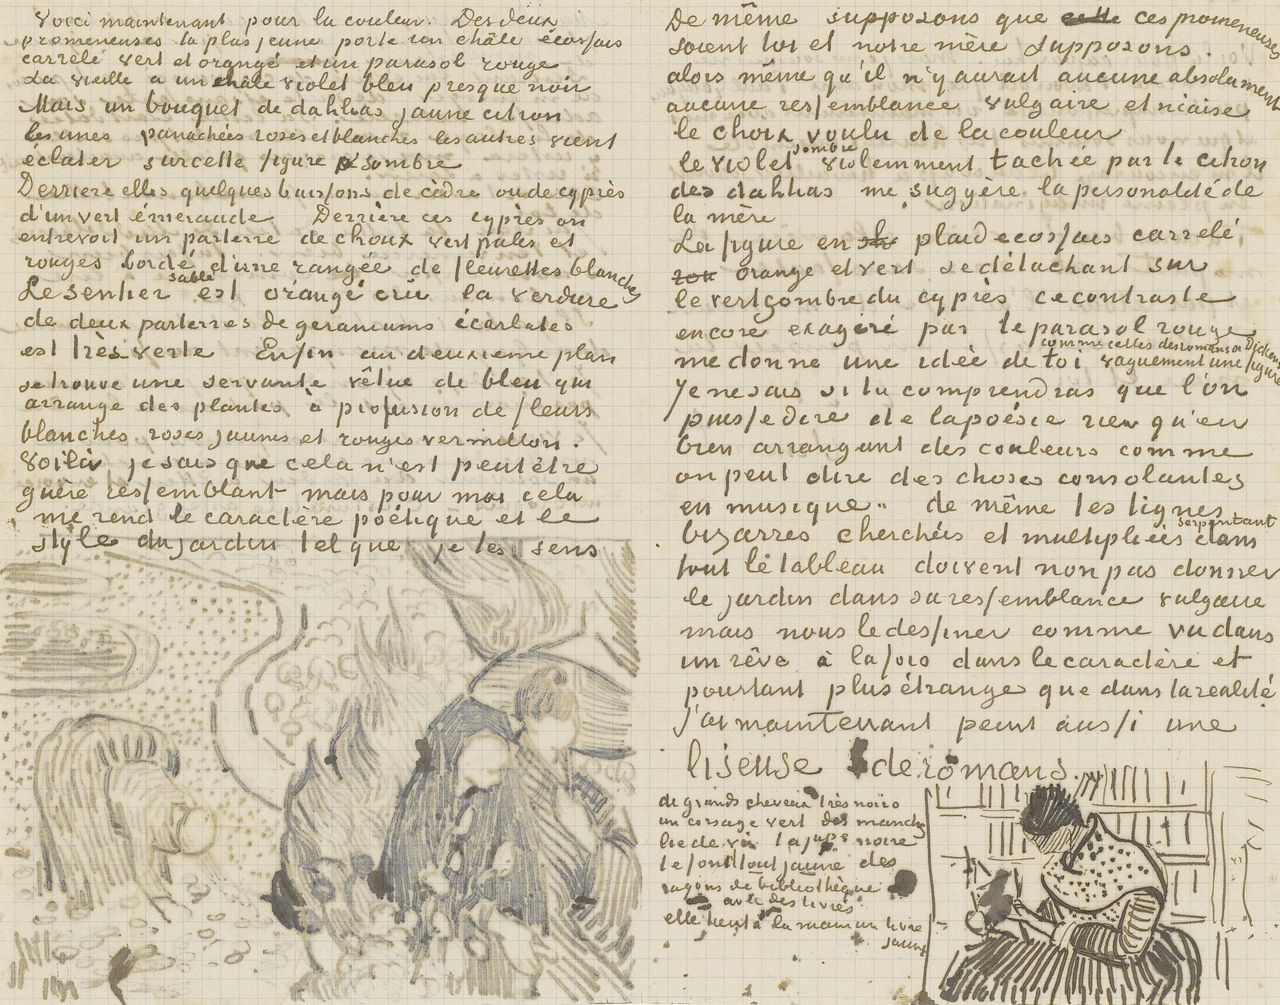 letter from vincent van gogh to willemien van gogh with sketches of reminiscence of garden at etten and woman reading a novel 1888 source vangoghmuseum